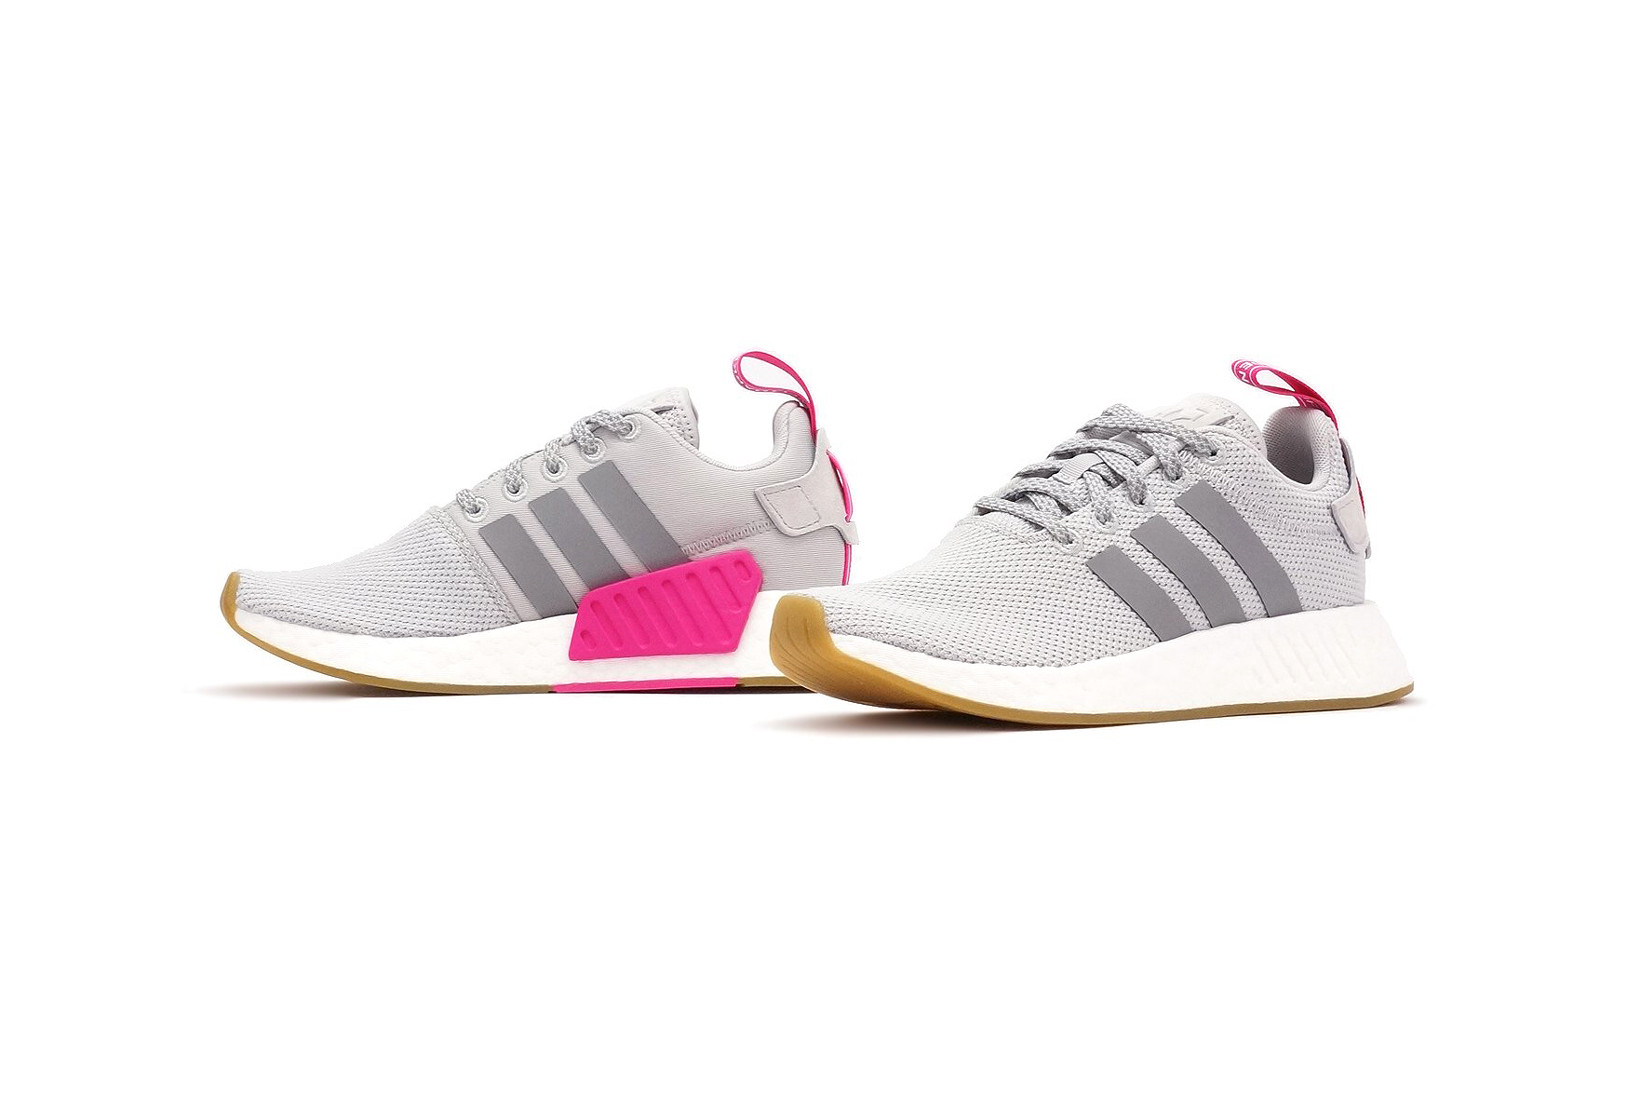 NMD R2 in Grey and Shock Pink